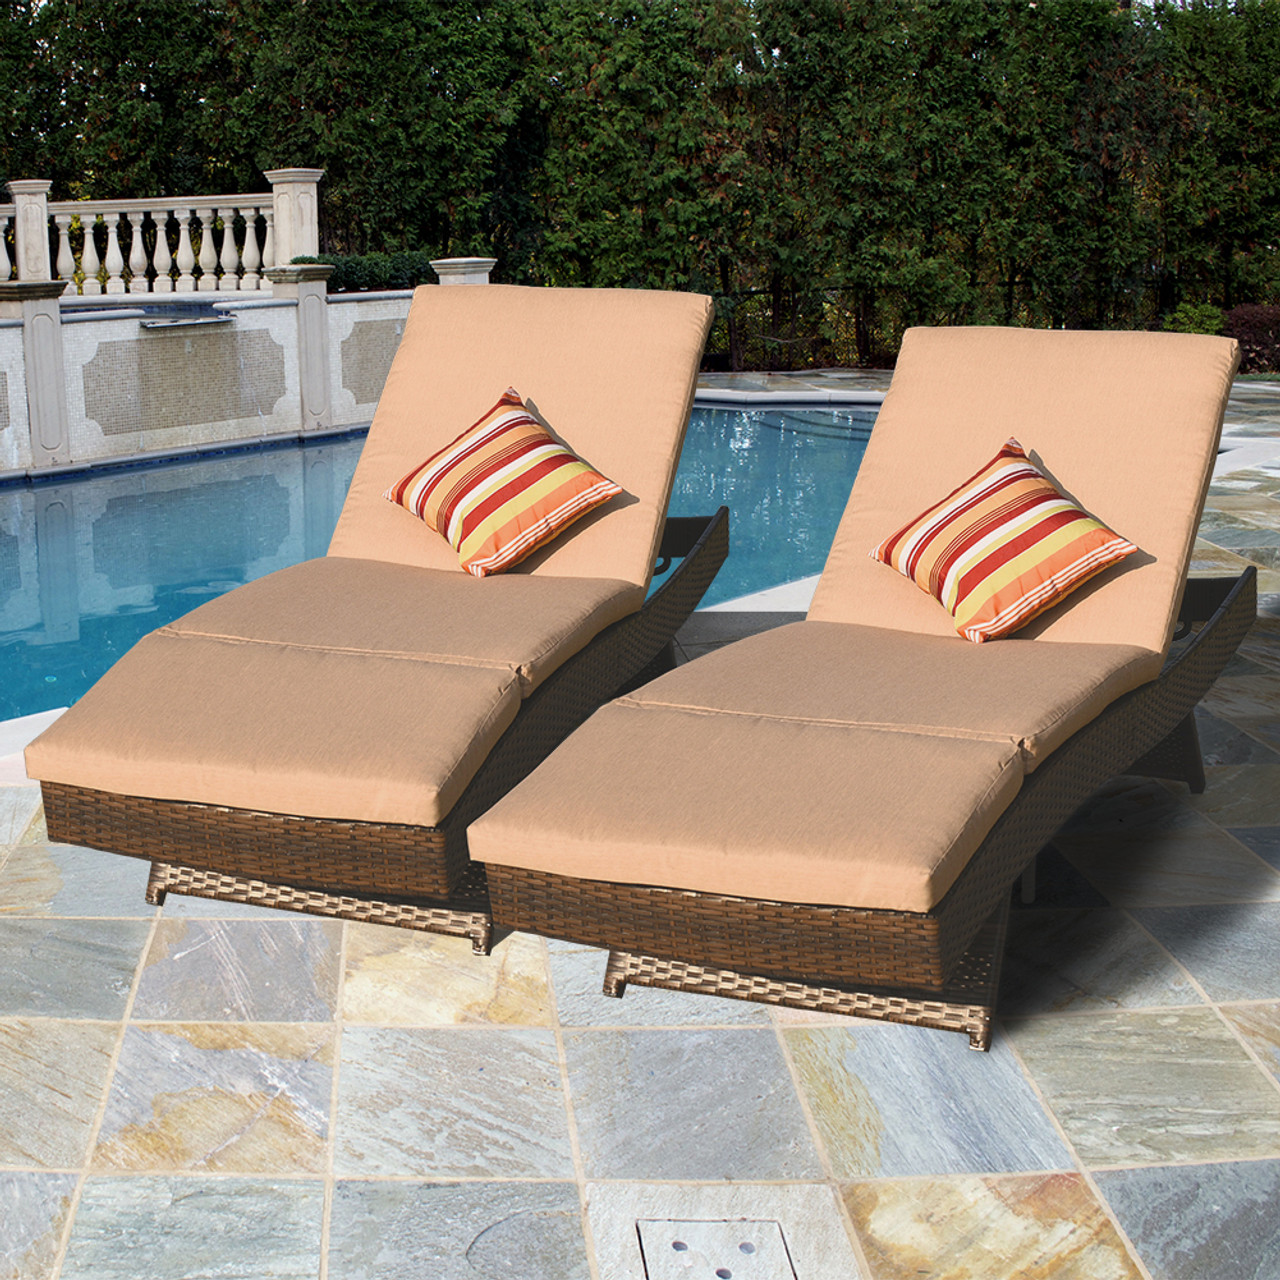 Luxury Reclining Brown Wicker Chaise Lounge Chair Outdoor Patio Yard